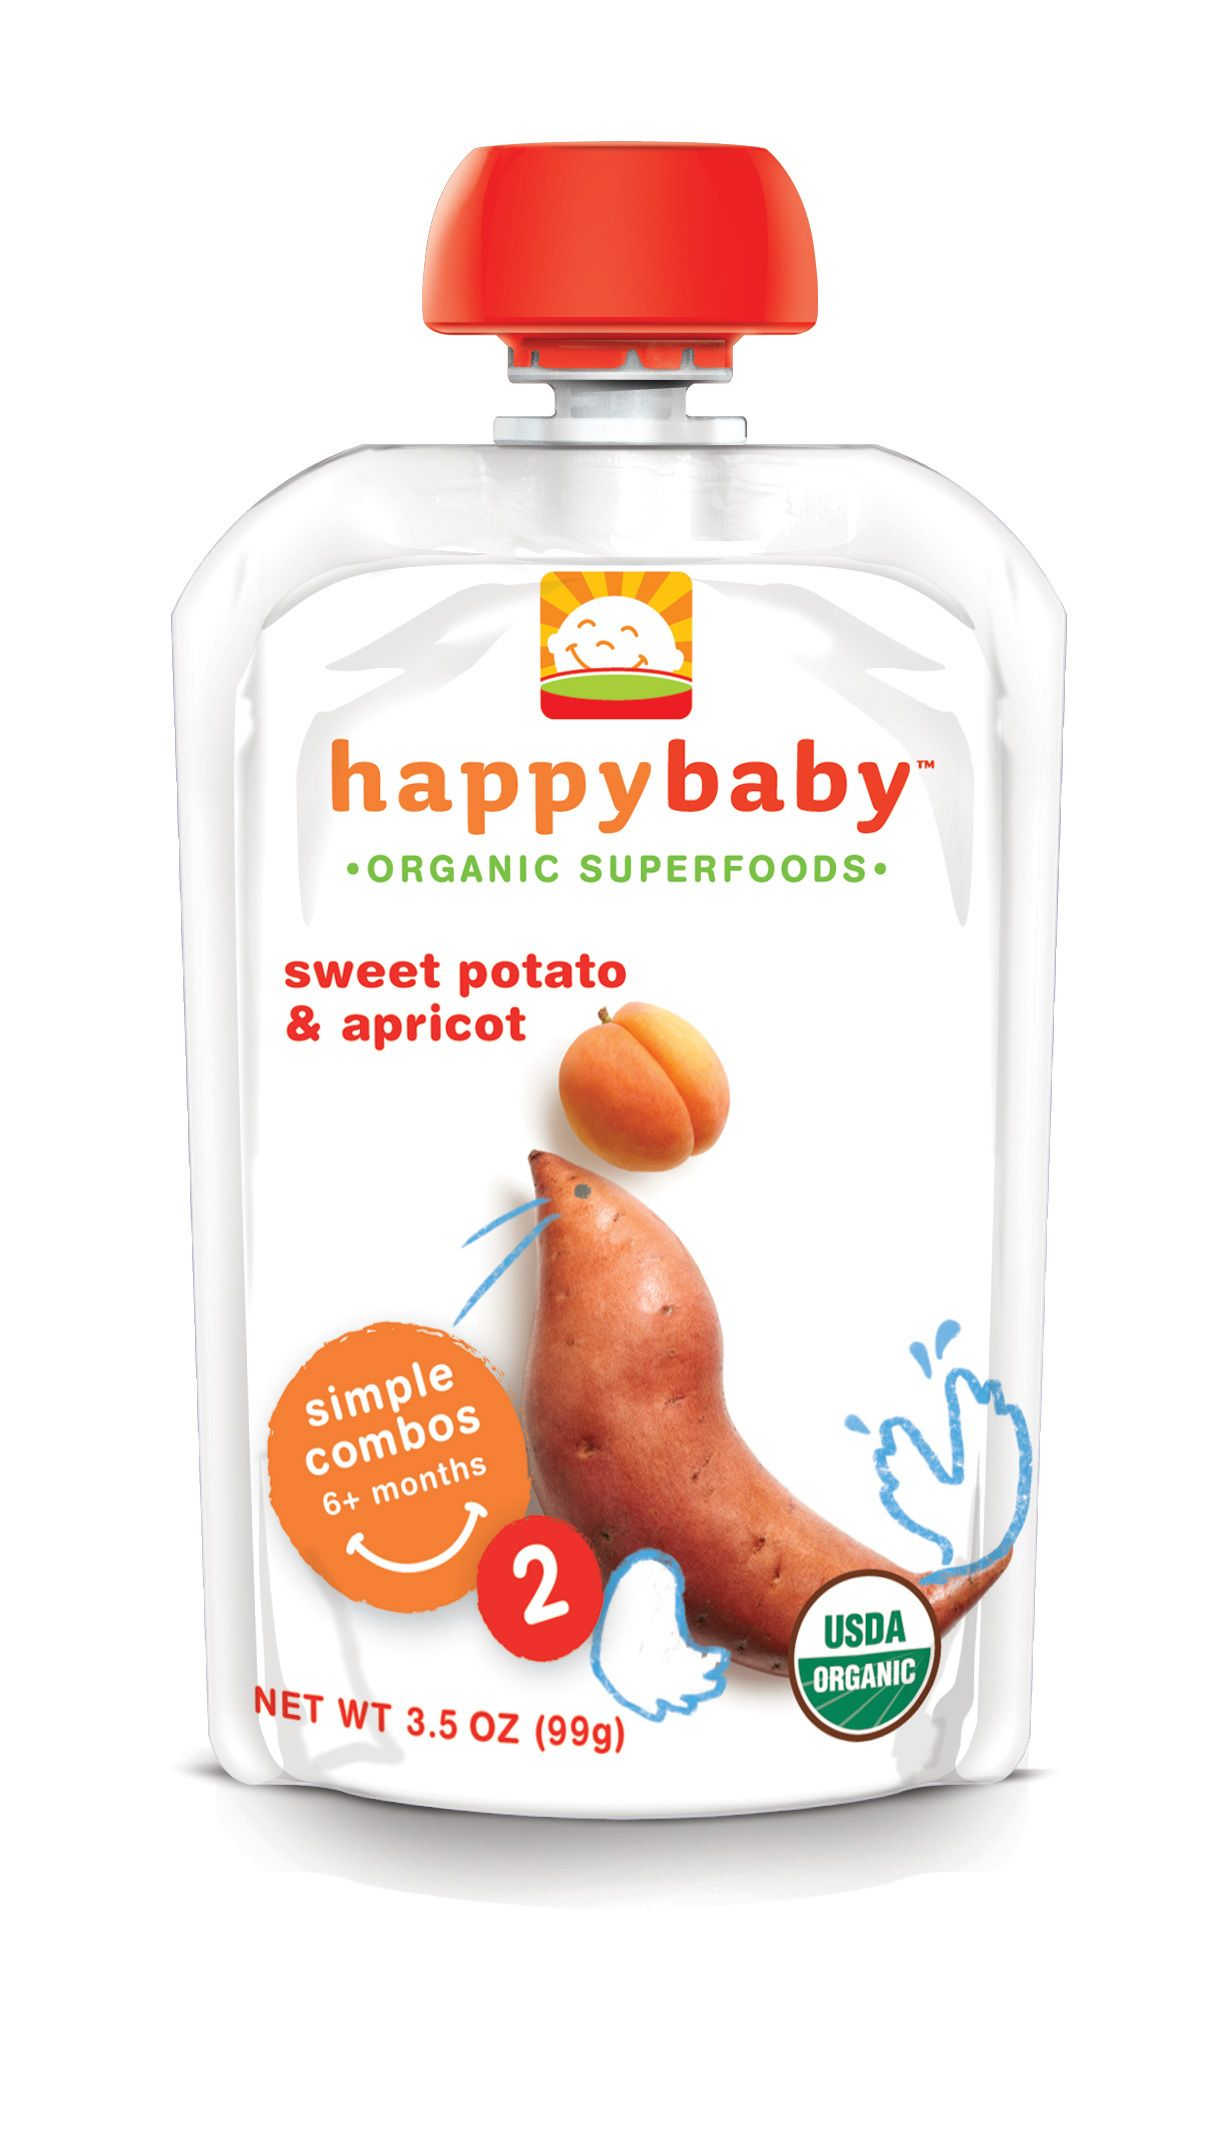 Happy baby foods apricot sweet potato lily loves this